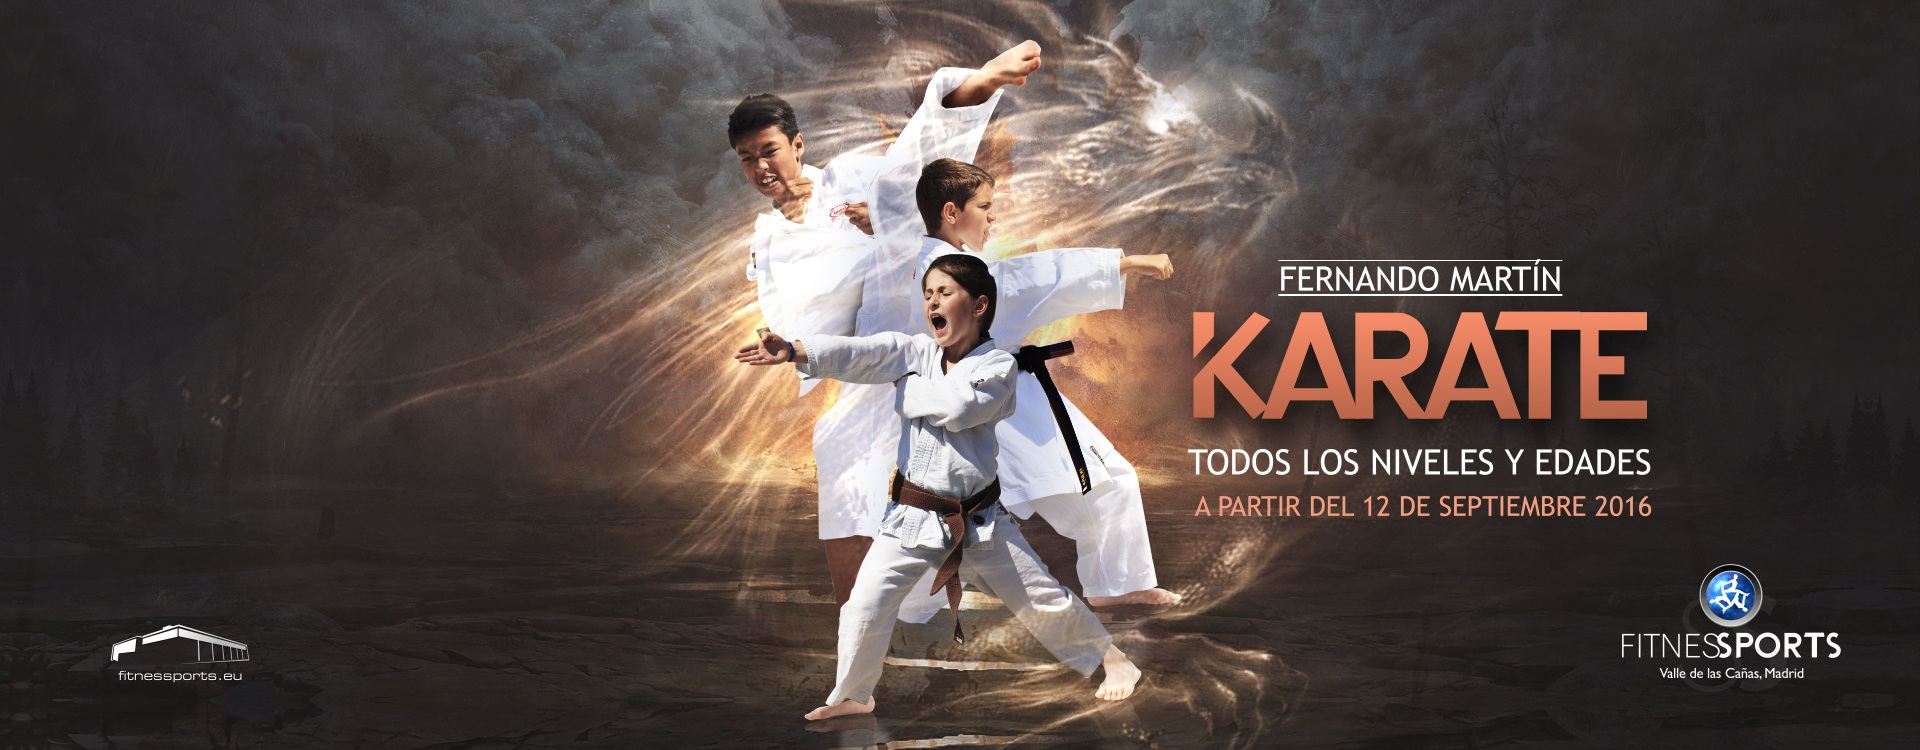 Escuela de Karate en Madrid